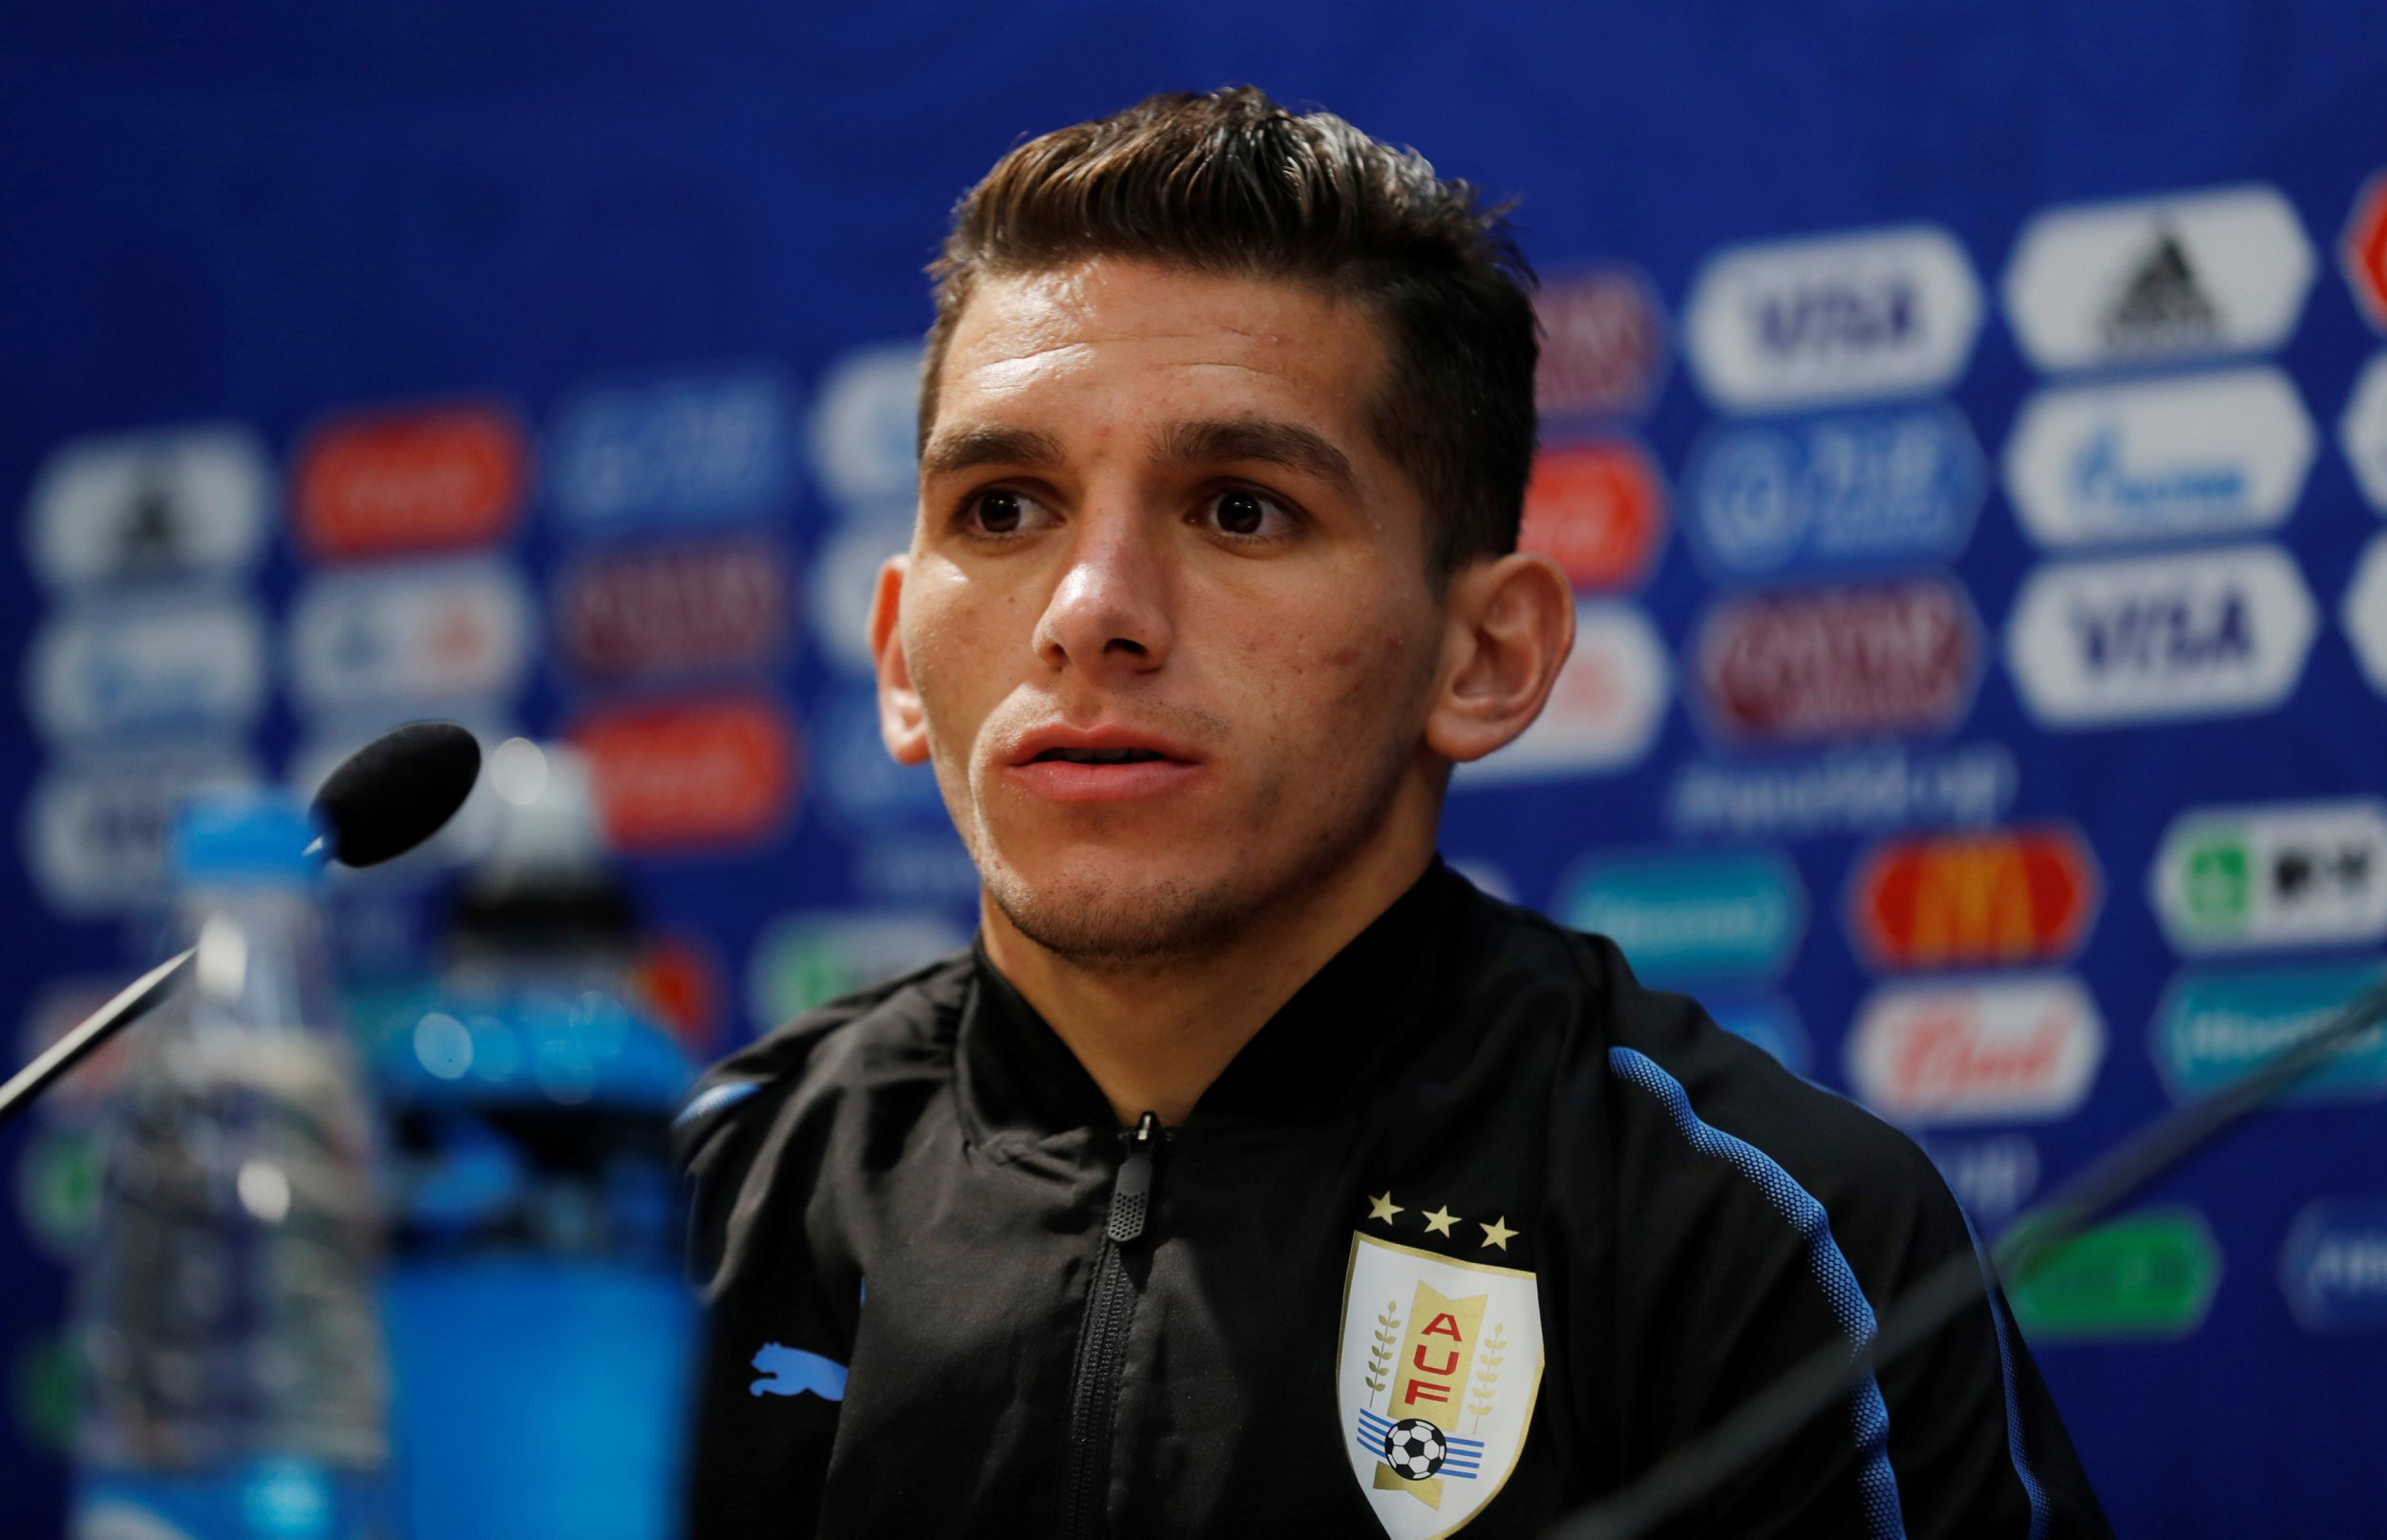 Lucas Torreira fuels Arsenal transfer speculation by setting up new Facebook page